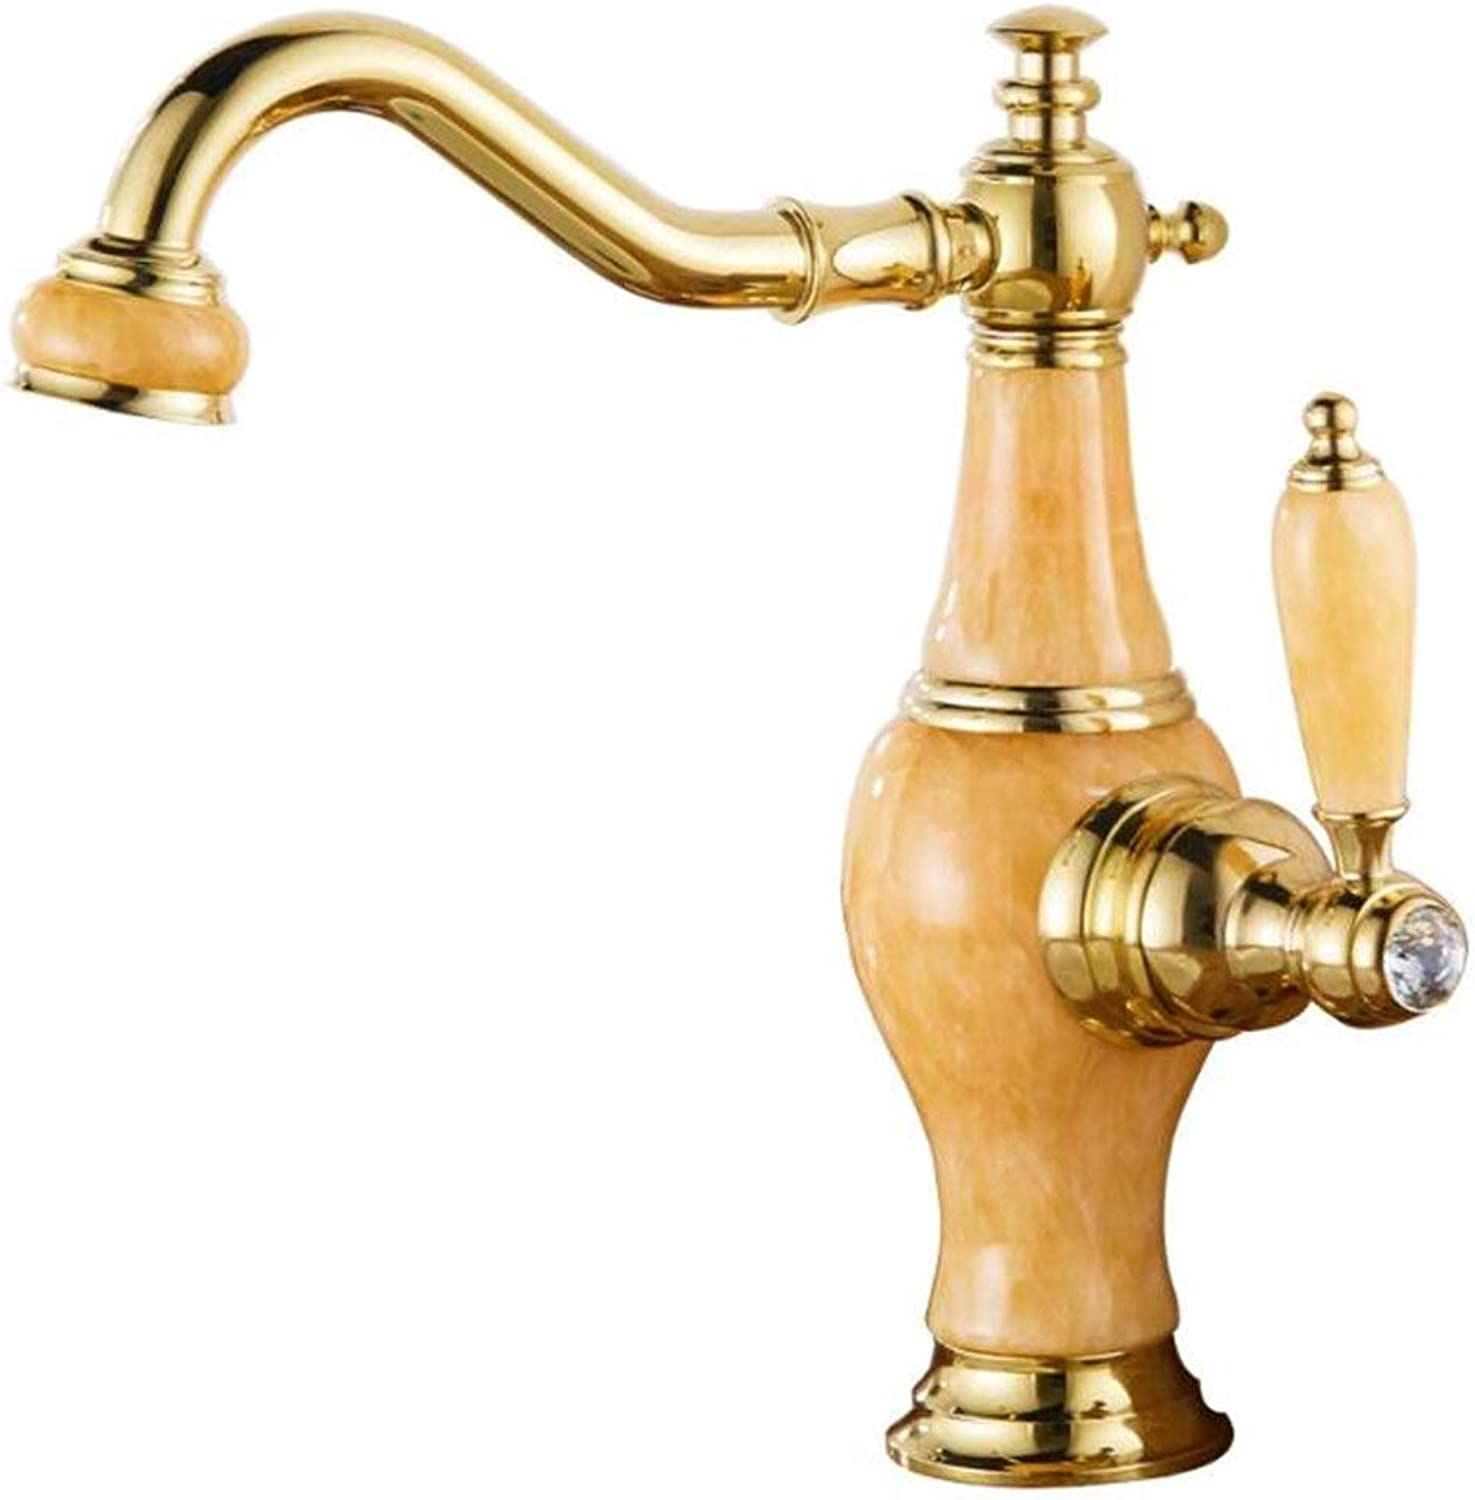 golden natural jade redatable basin faucet copper single hole basin hot and cold single bathroom faucet